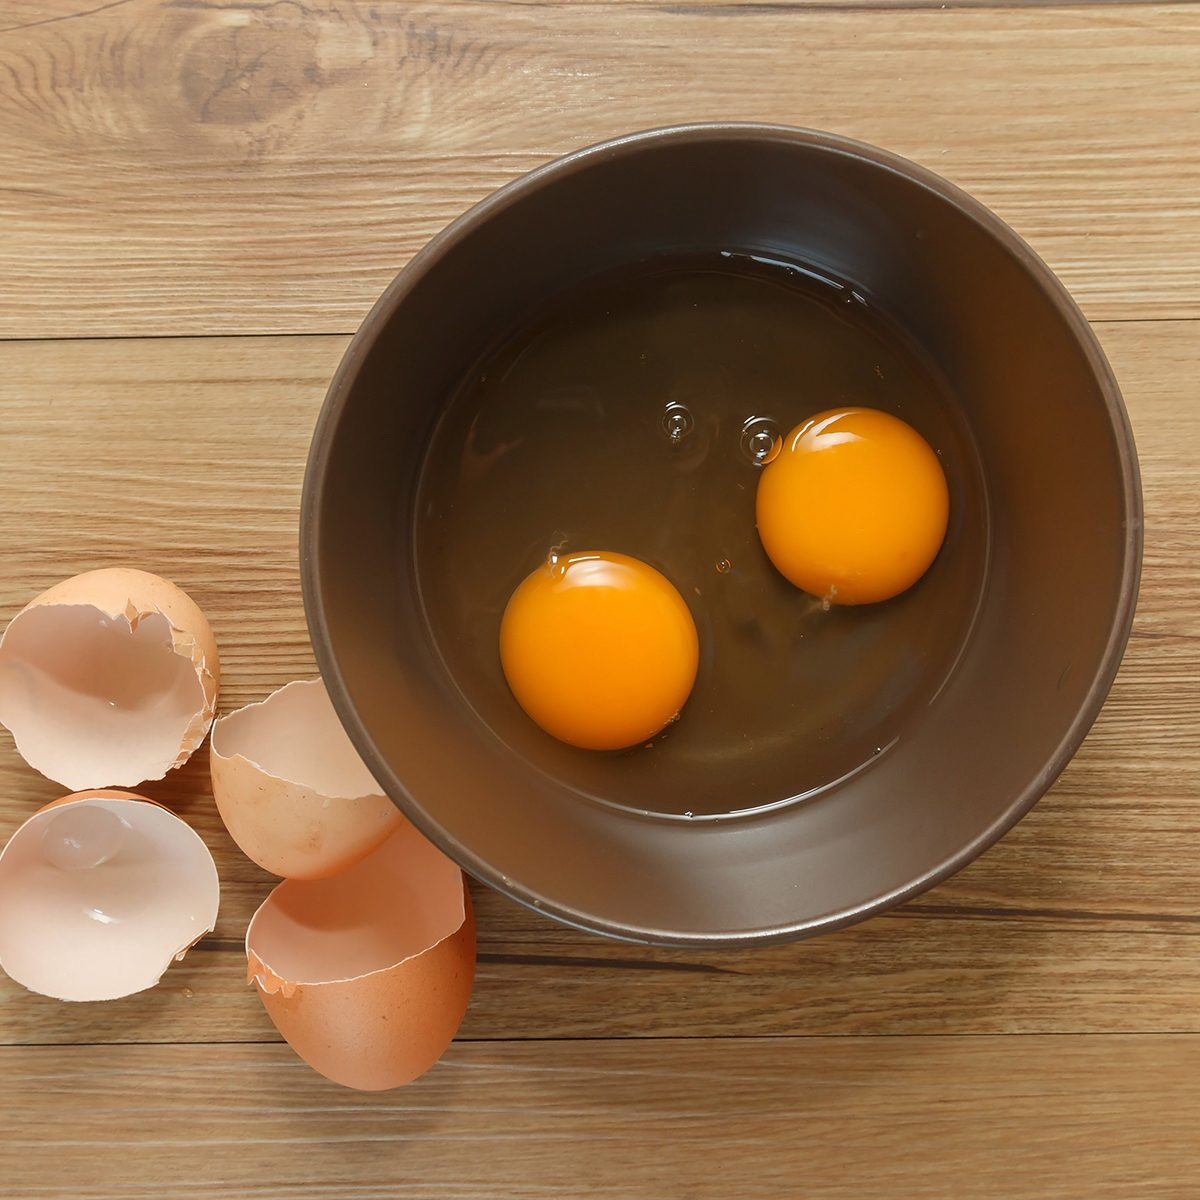 Cracked eggs with yolks in a bowl